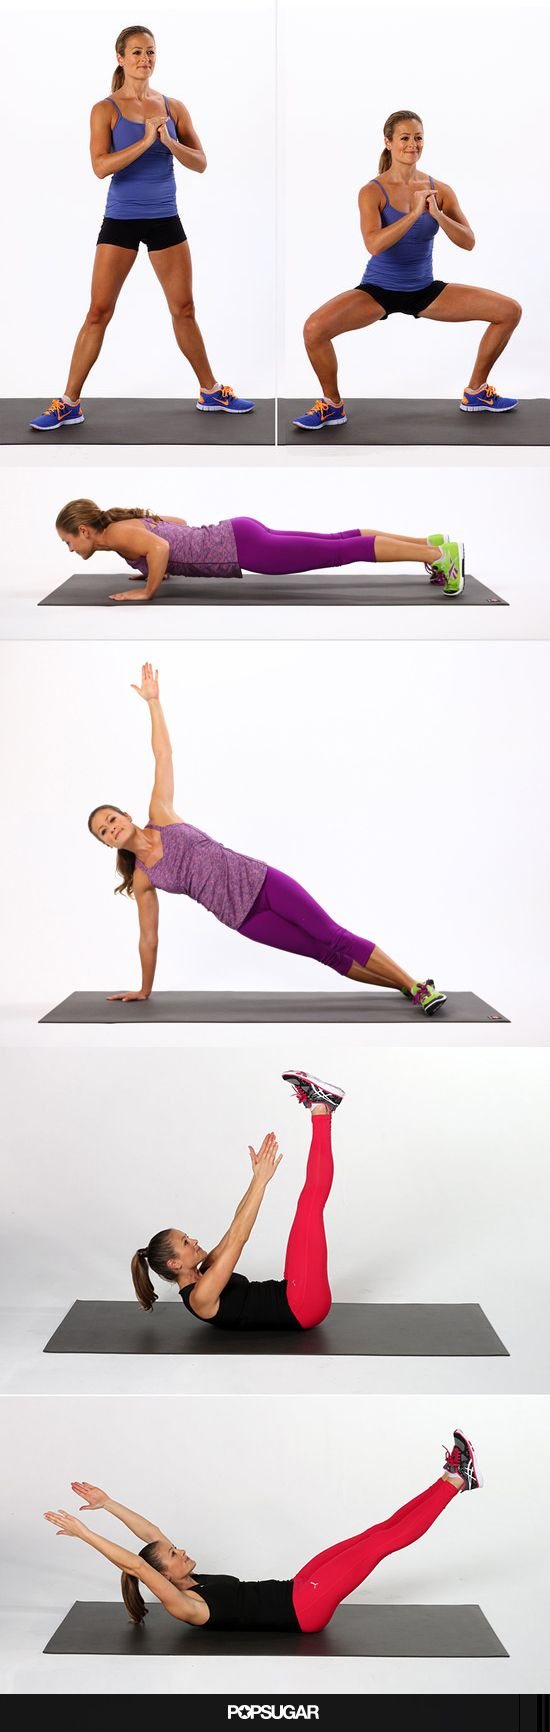 This total-body fitness challenge combines exercises from all three of these challenges to strengthen and firm your entire body. It's short workout anyone can fit into their busy day because it only takes a few intense minutes.